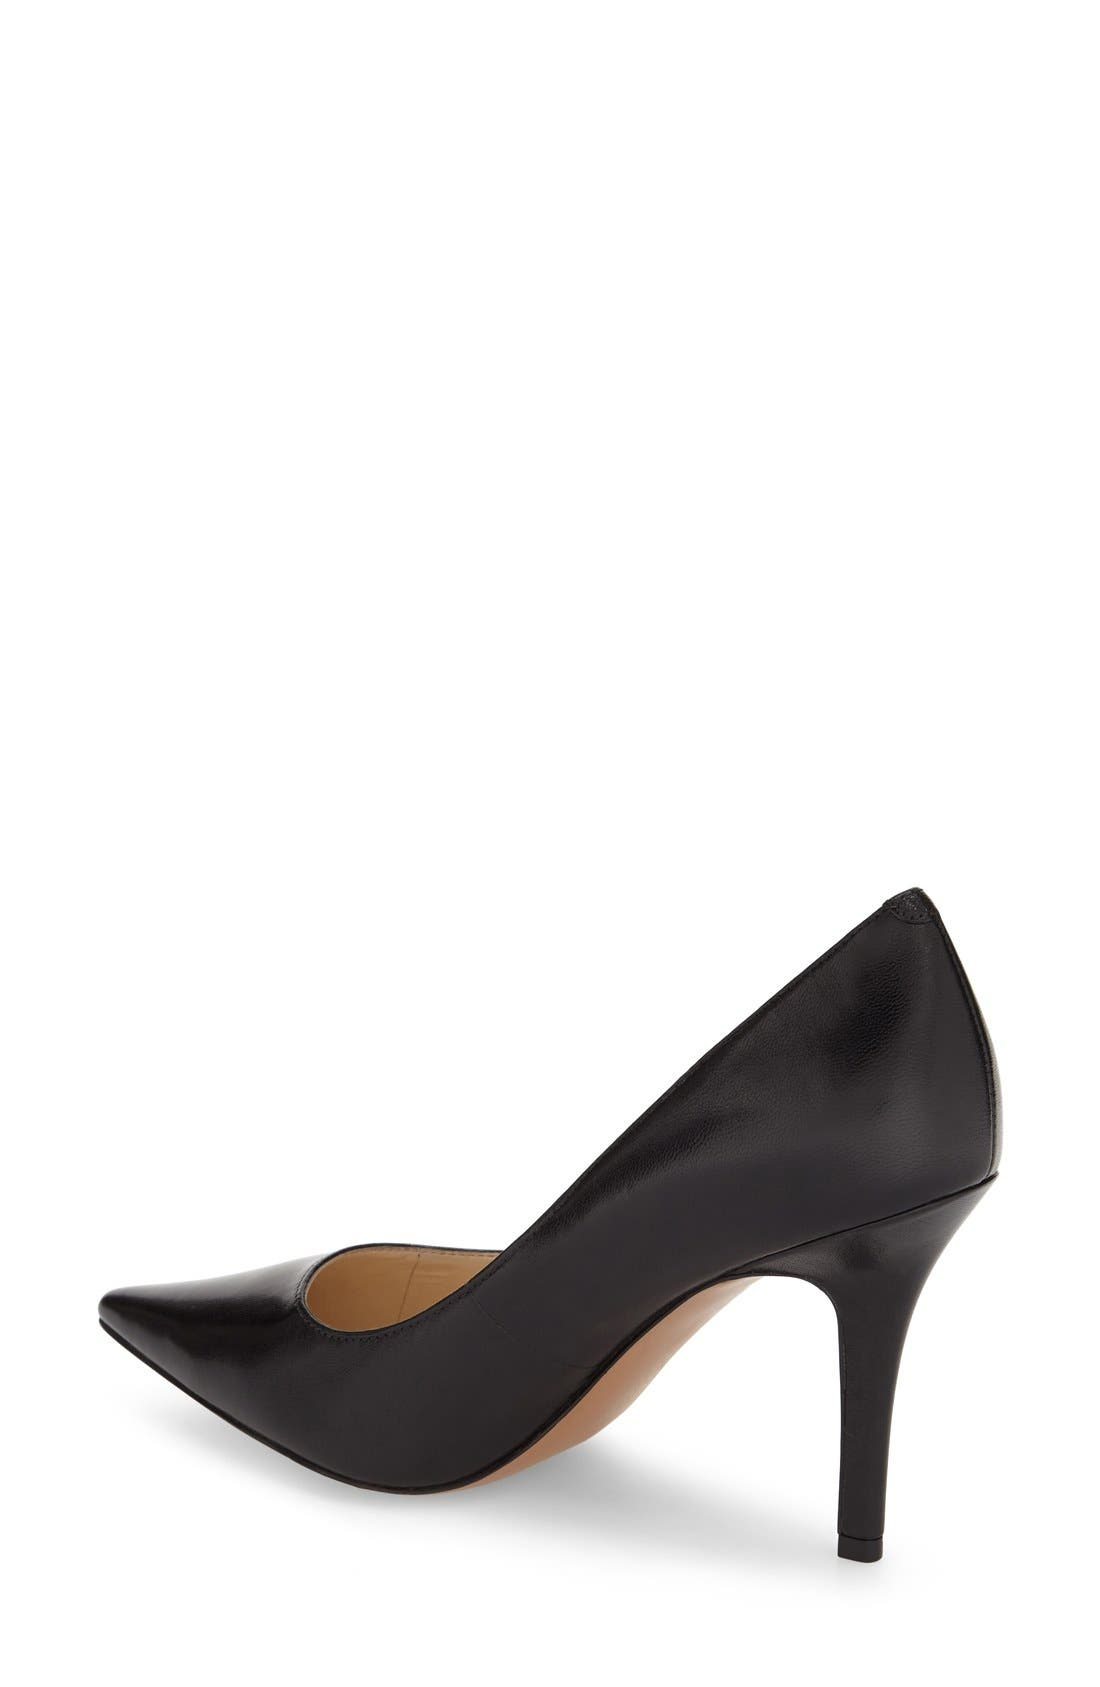 'Jackpot' Pointy Toe Pump,                             Alternate thumbnail 2, color,                             001